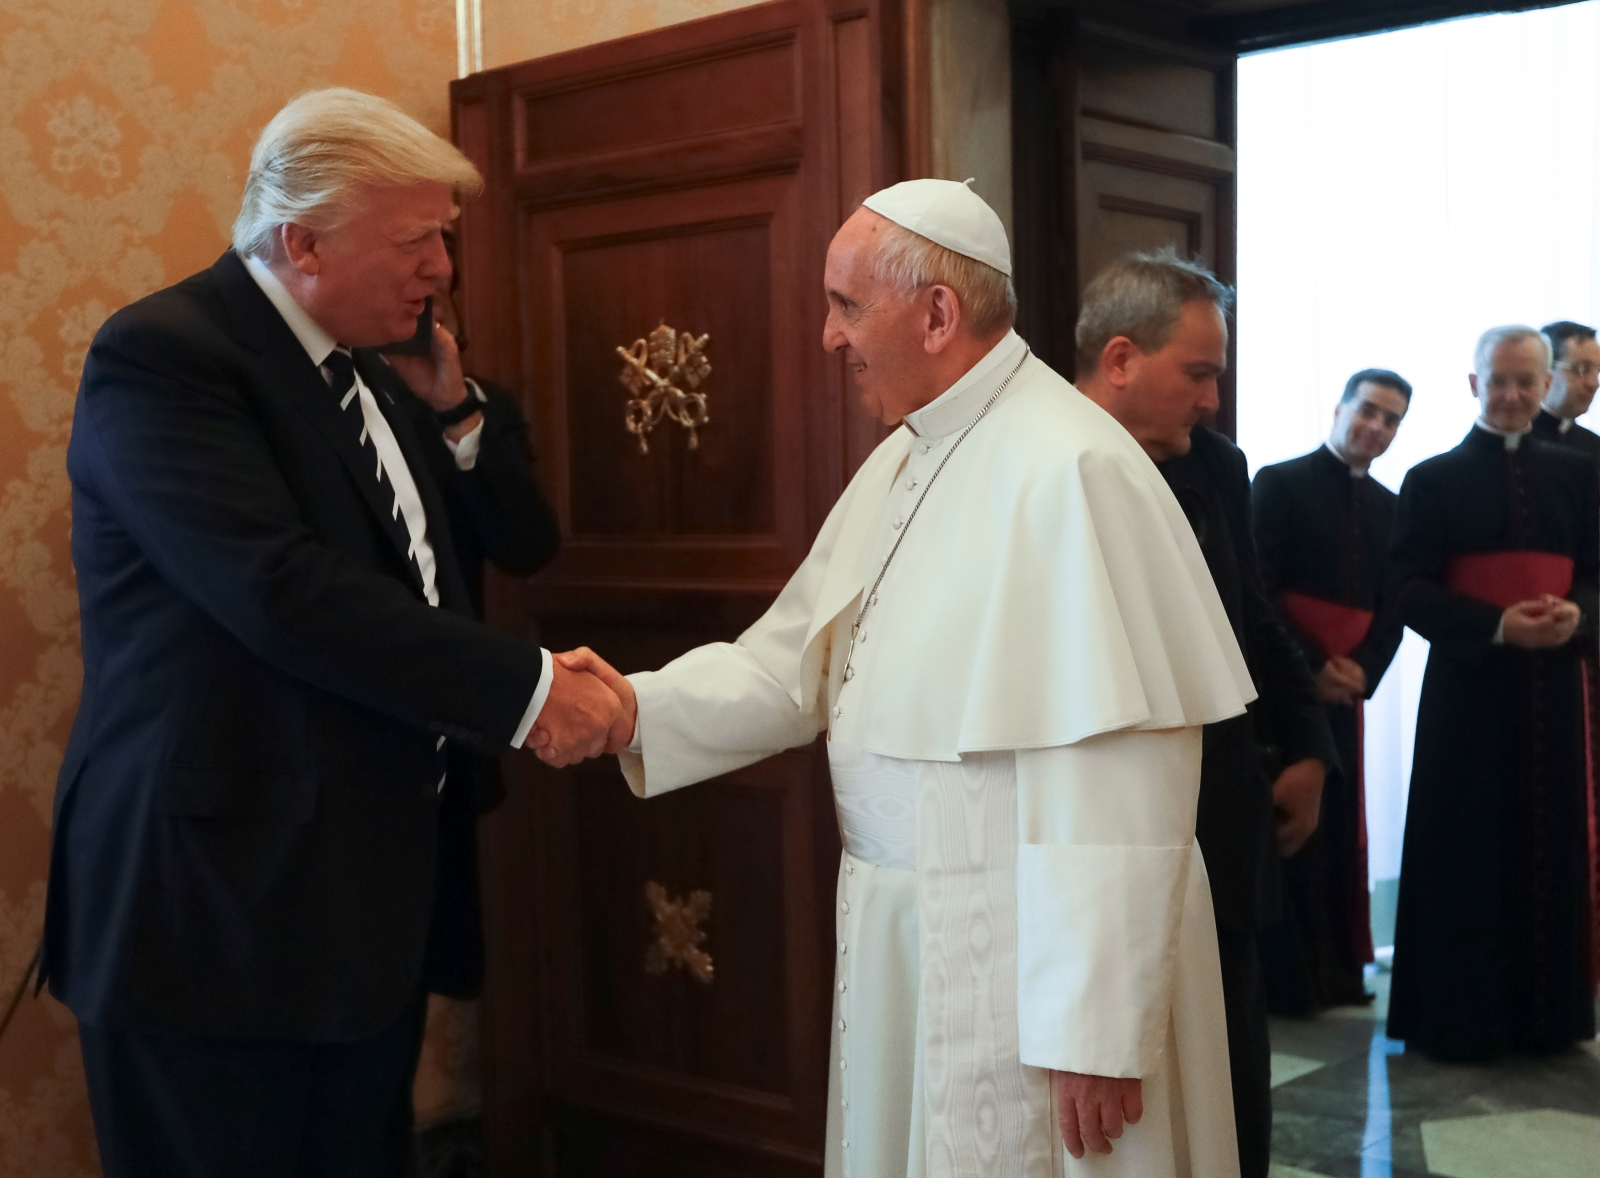 Which issues do Donald Trump and Pope Francis disagree on